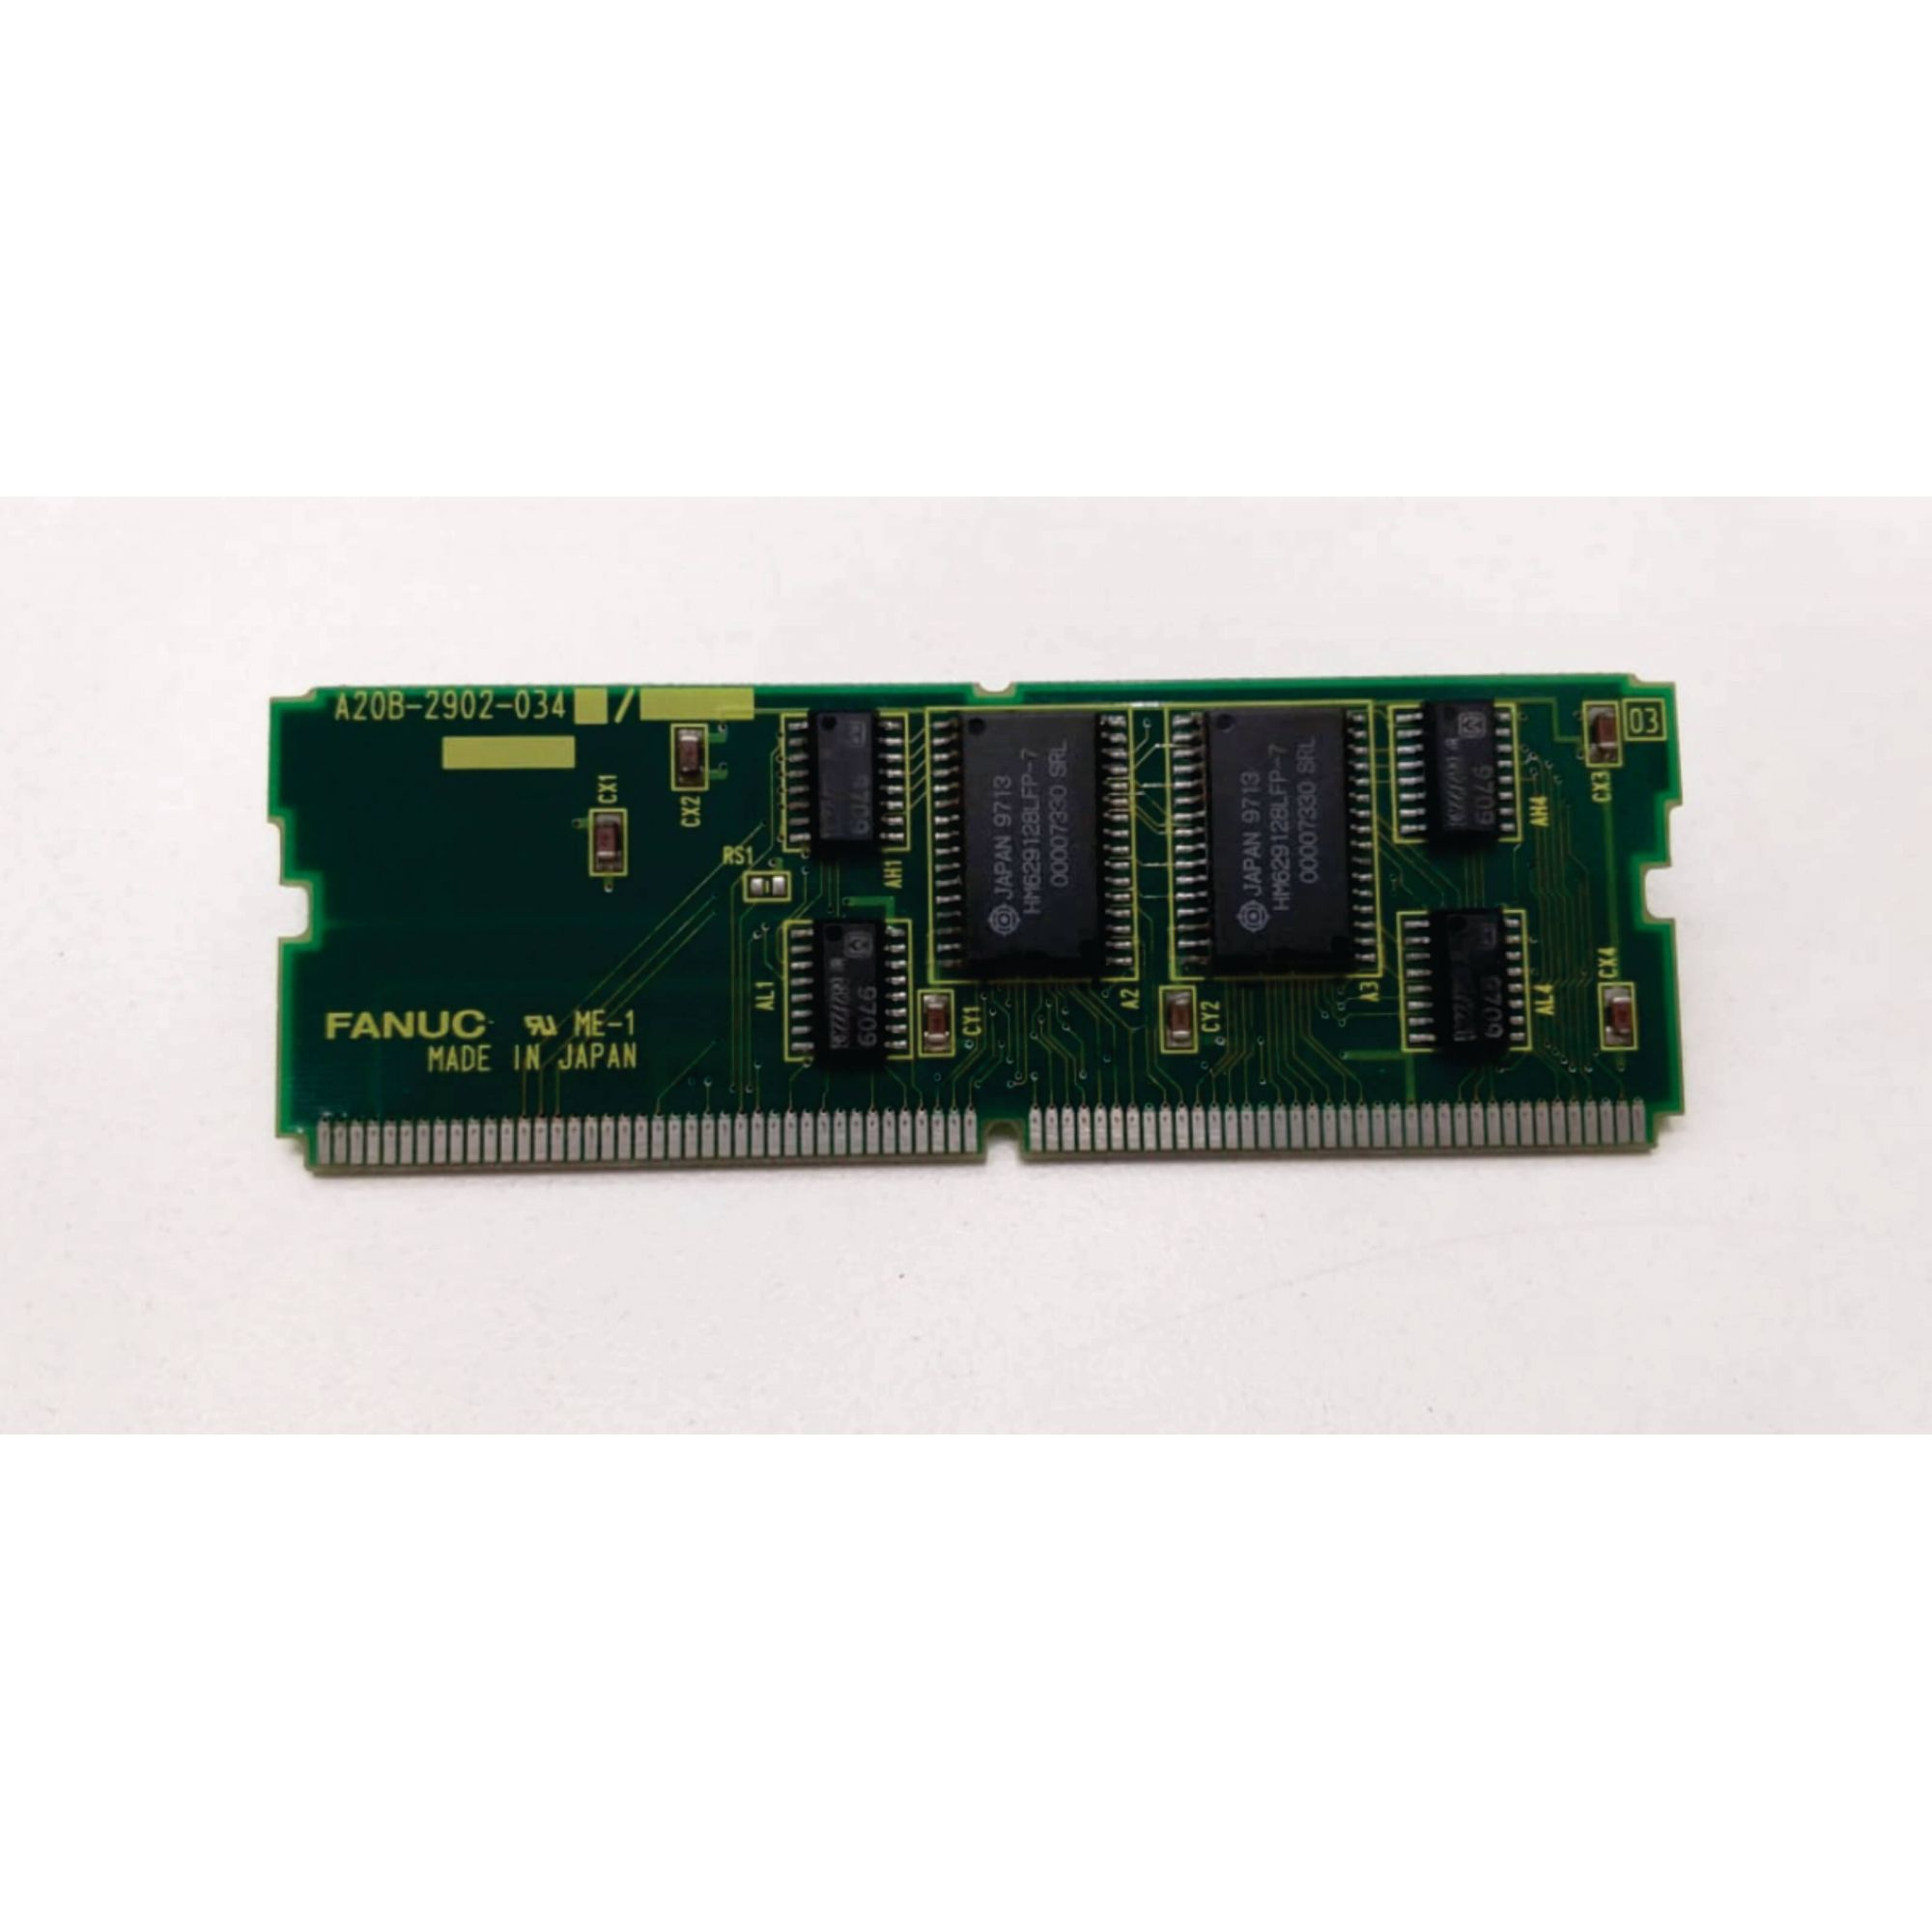 A20B-2902-0341 | PLACA FROM CNC | FANUC